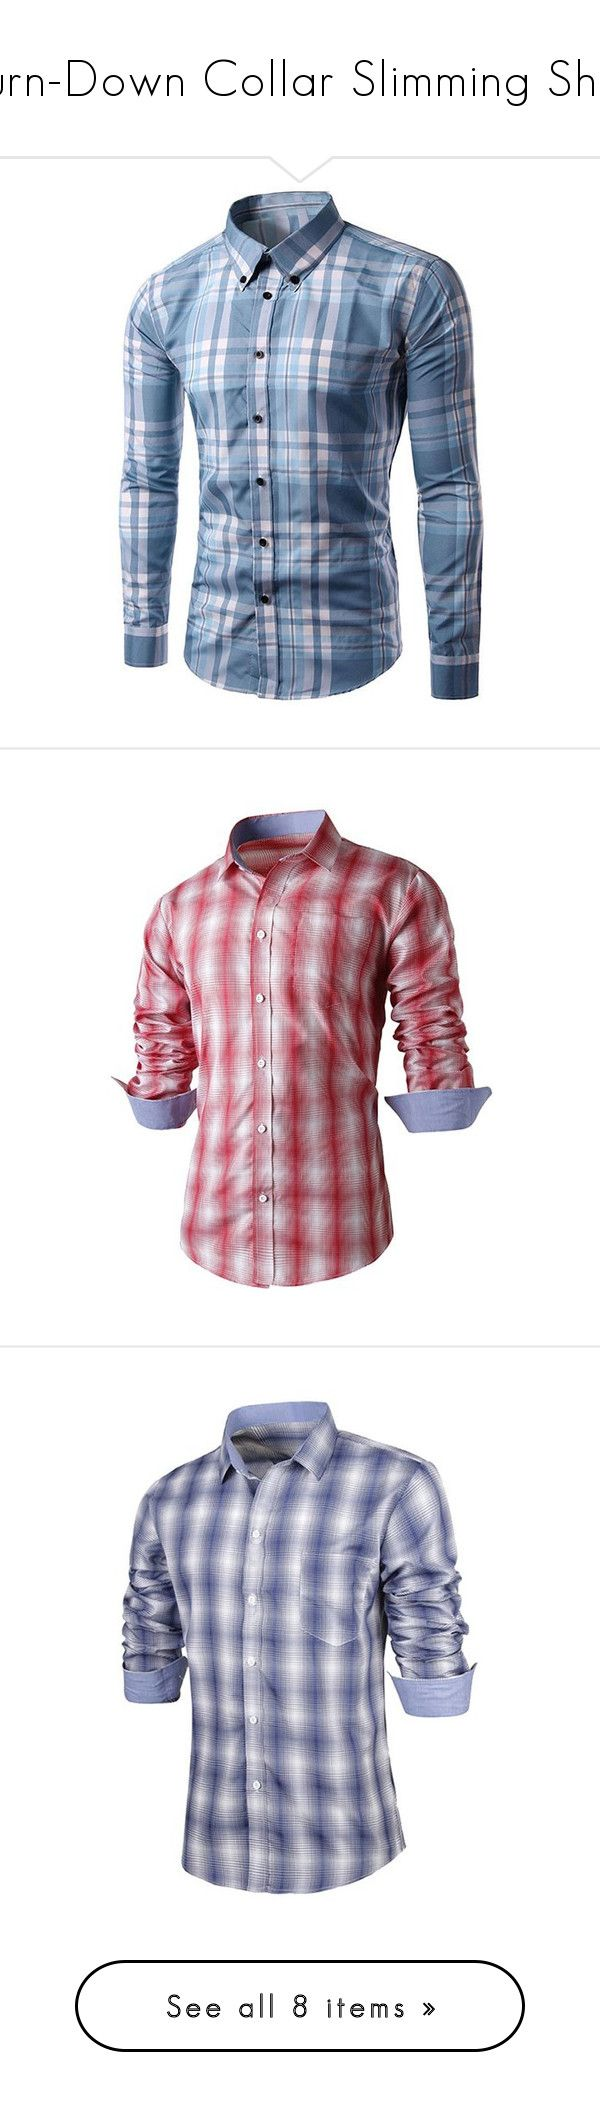 """""""Turn-Down Collar Slimming Shirt"""" by rosegal-official ❤ liked on Polyvore featuring plaid, shirt, men, rosegal, men's fashion, men's clothing, men's shirts, men's casual shirts, mens slim fit shirts and mens long sleeve collared shirts"""